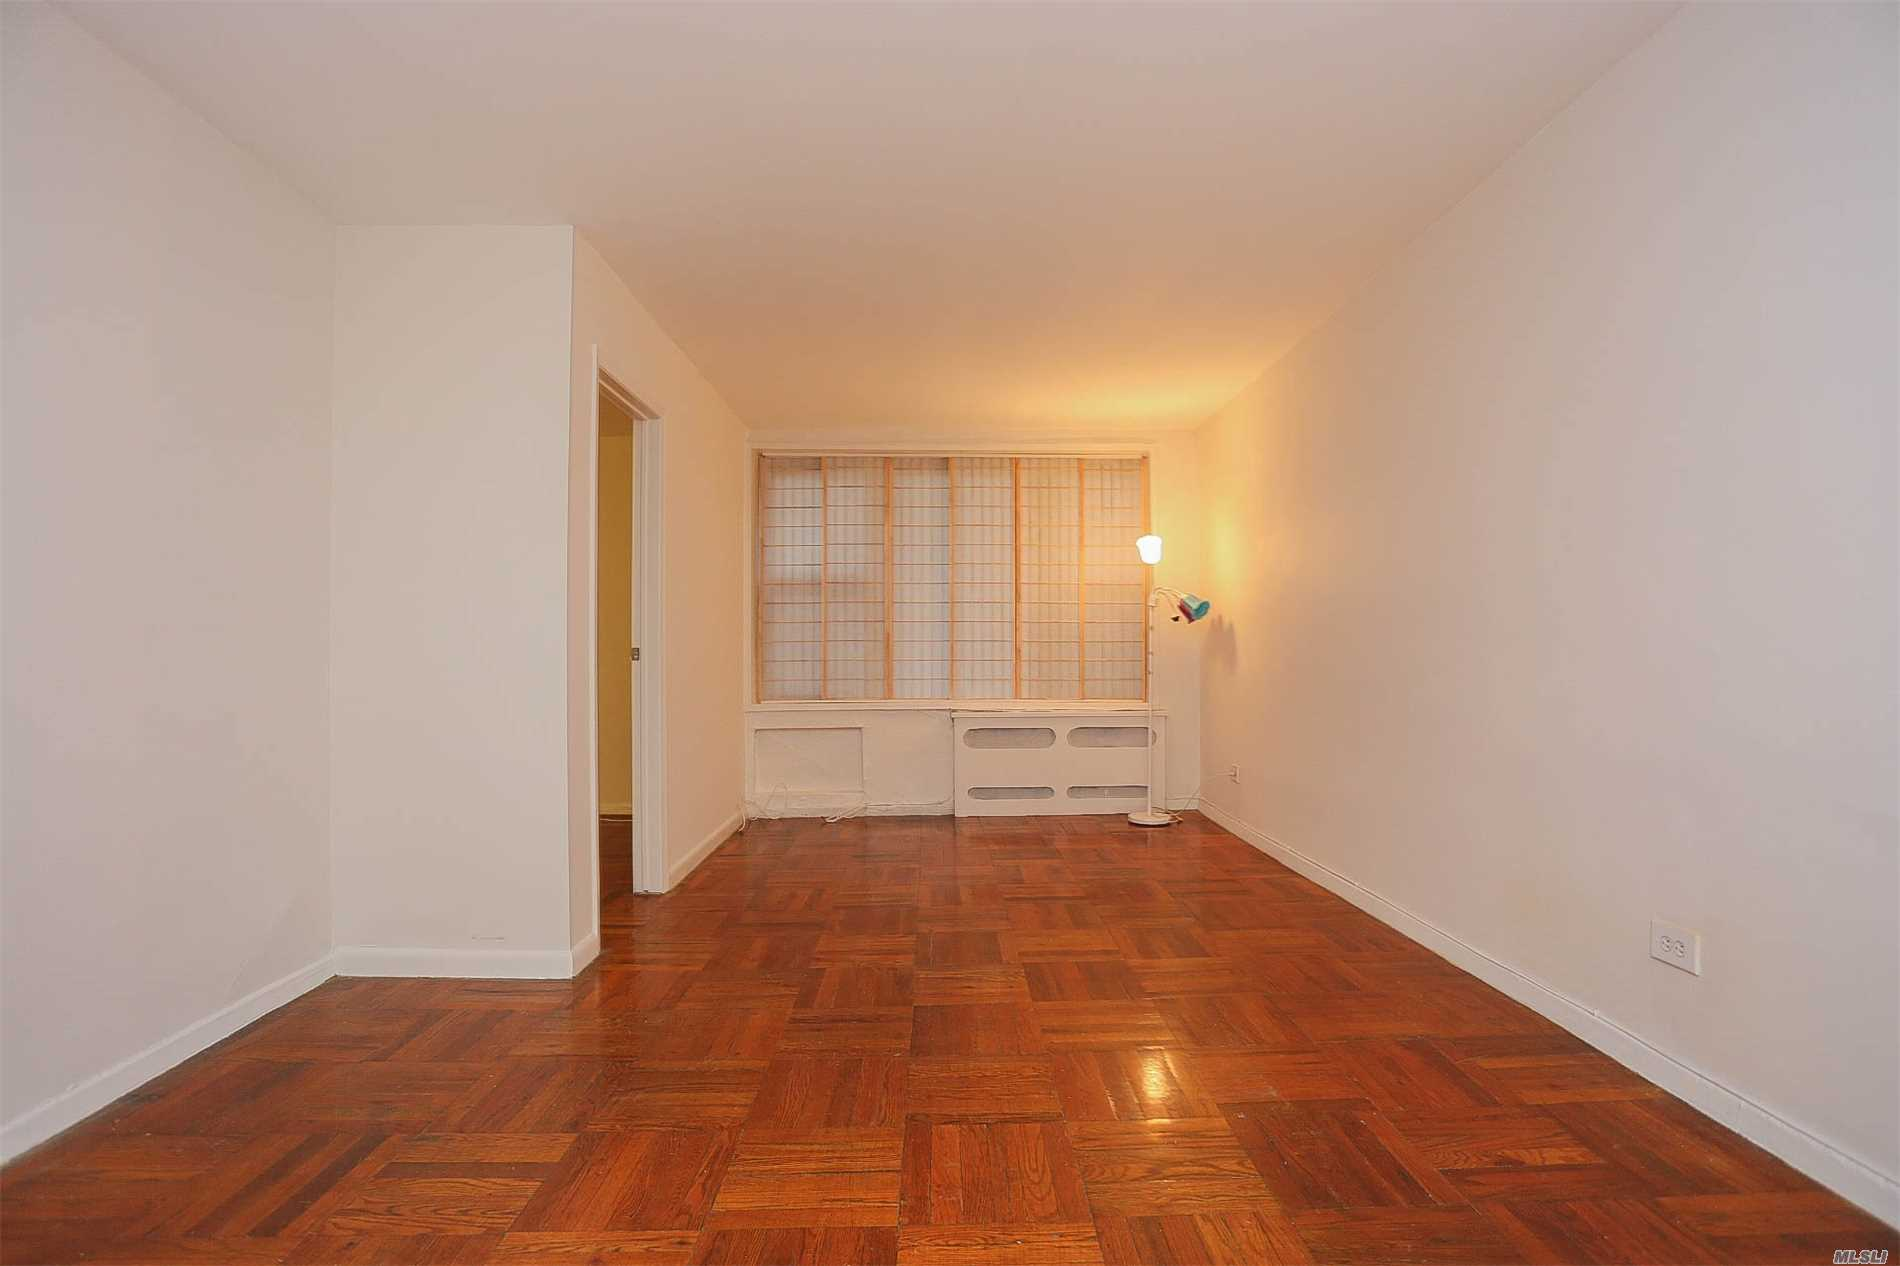 Gorgeous Alcove Studio For Sale In Elmhurst, Queens. Immediate Subletting Is Allowed Which Makes This A Great Opportunity For Investors And End Users Alike. Located Less Than 1 Block From The M & R At Elmhurst Ave, This Unit Features A Recently Repurposed Kitchen, New Appliances, Full Bath, Hardwood Floors, And A Fully Partitioned Room That Makes The Apt Function More Like A 1 Bedroom Than A Studio. Building Features Secured Entry, Laundry, On-Site Super, Pet Friendly And Much More.